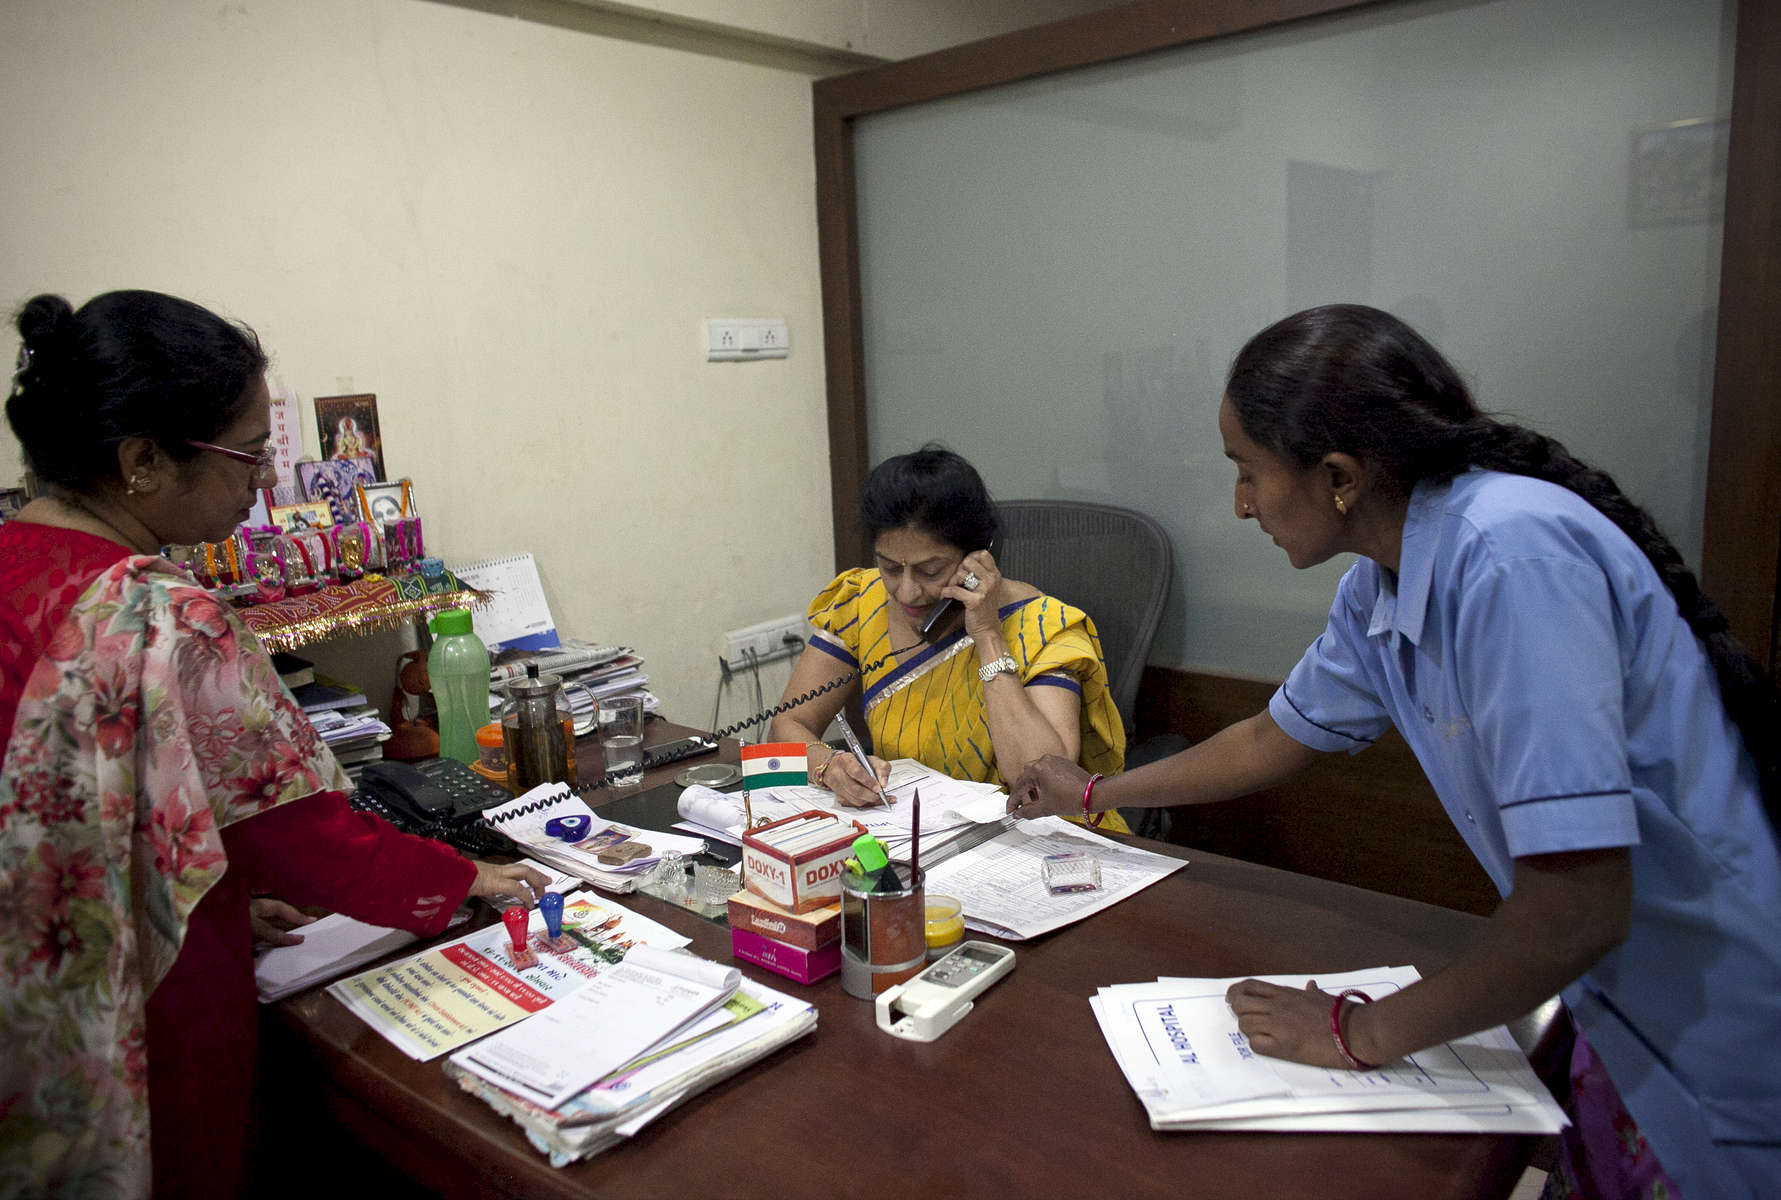 Dr. Nayna Patel works in her office